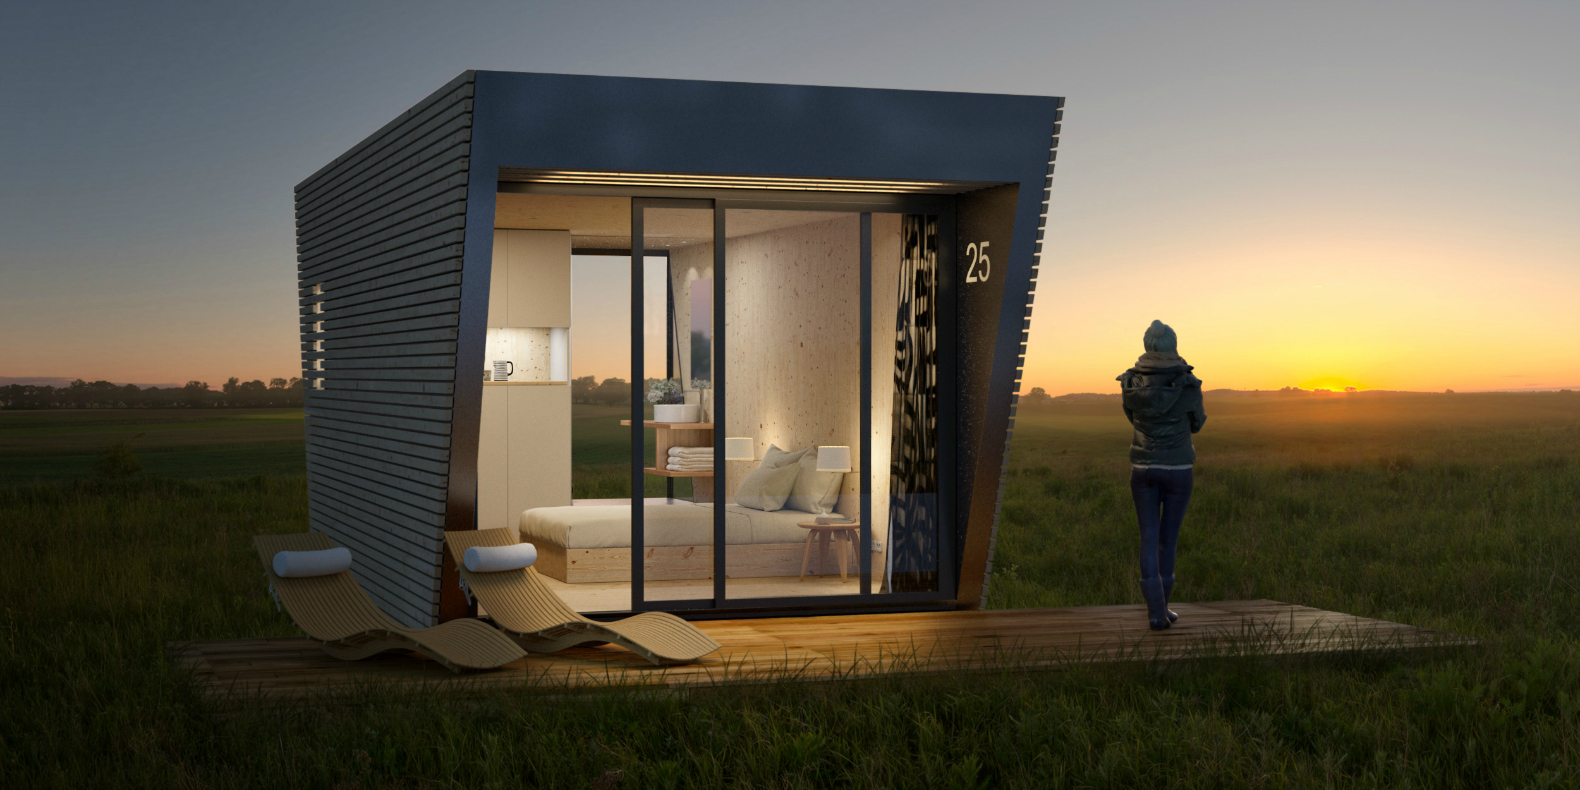 Japanese Bathrooms Design Drop Box Micro Hotel Lets You Roam The World In Nomadic